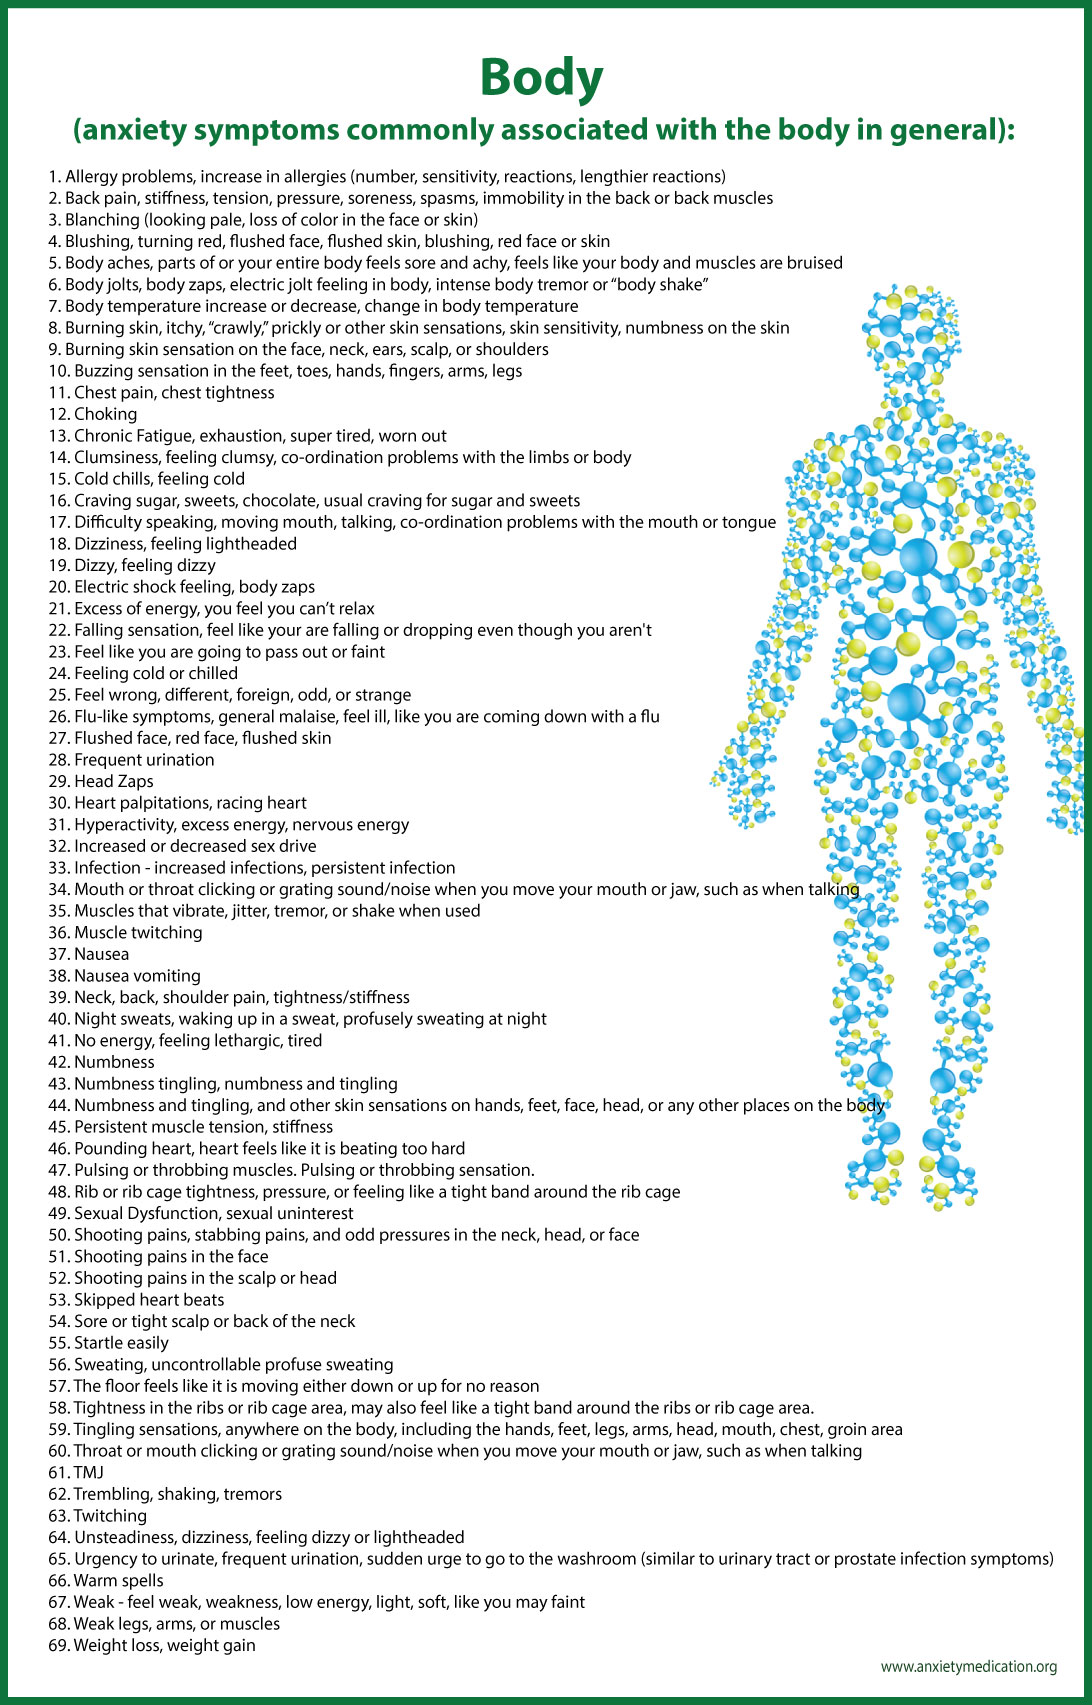 70 body anxiety symptoms